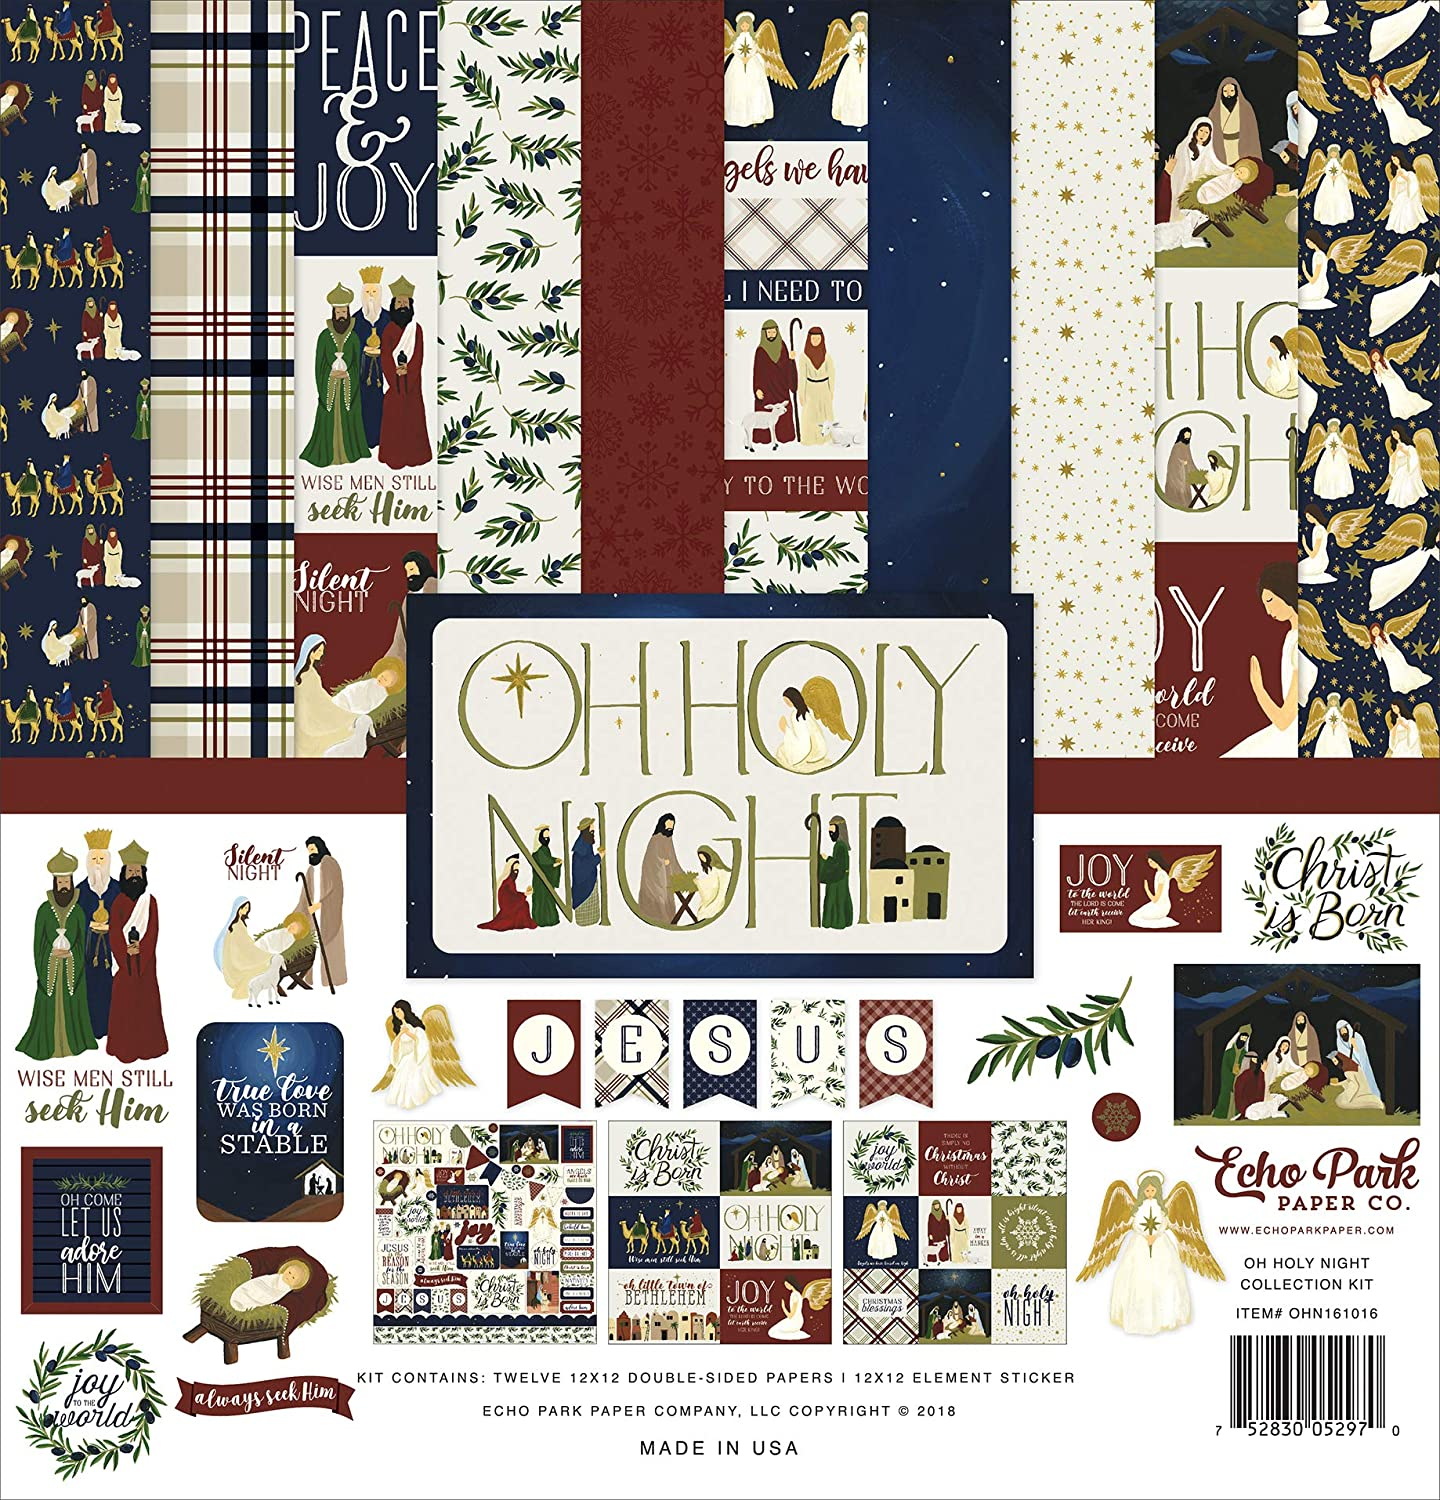 Echo Park Paper Company OHN161016 Oh Holy Night Collection Kit, red, Green, tan, Gold, Navy